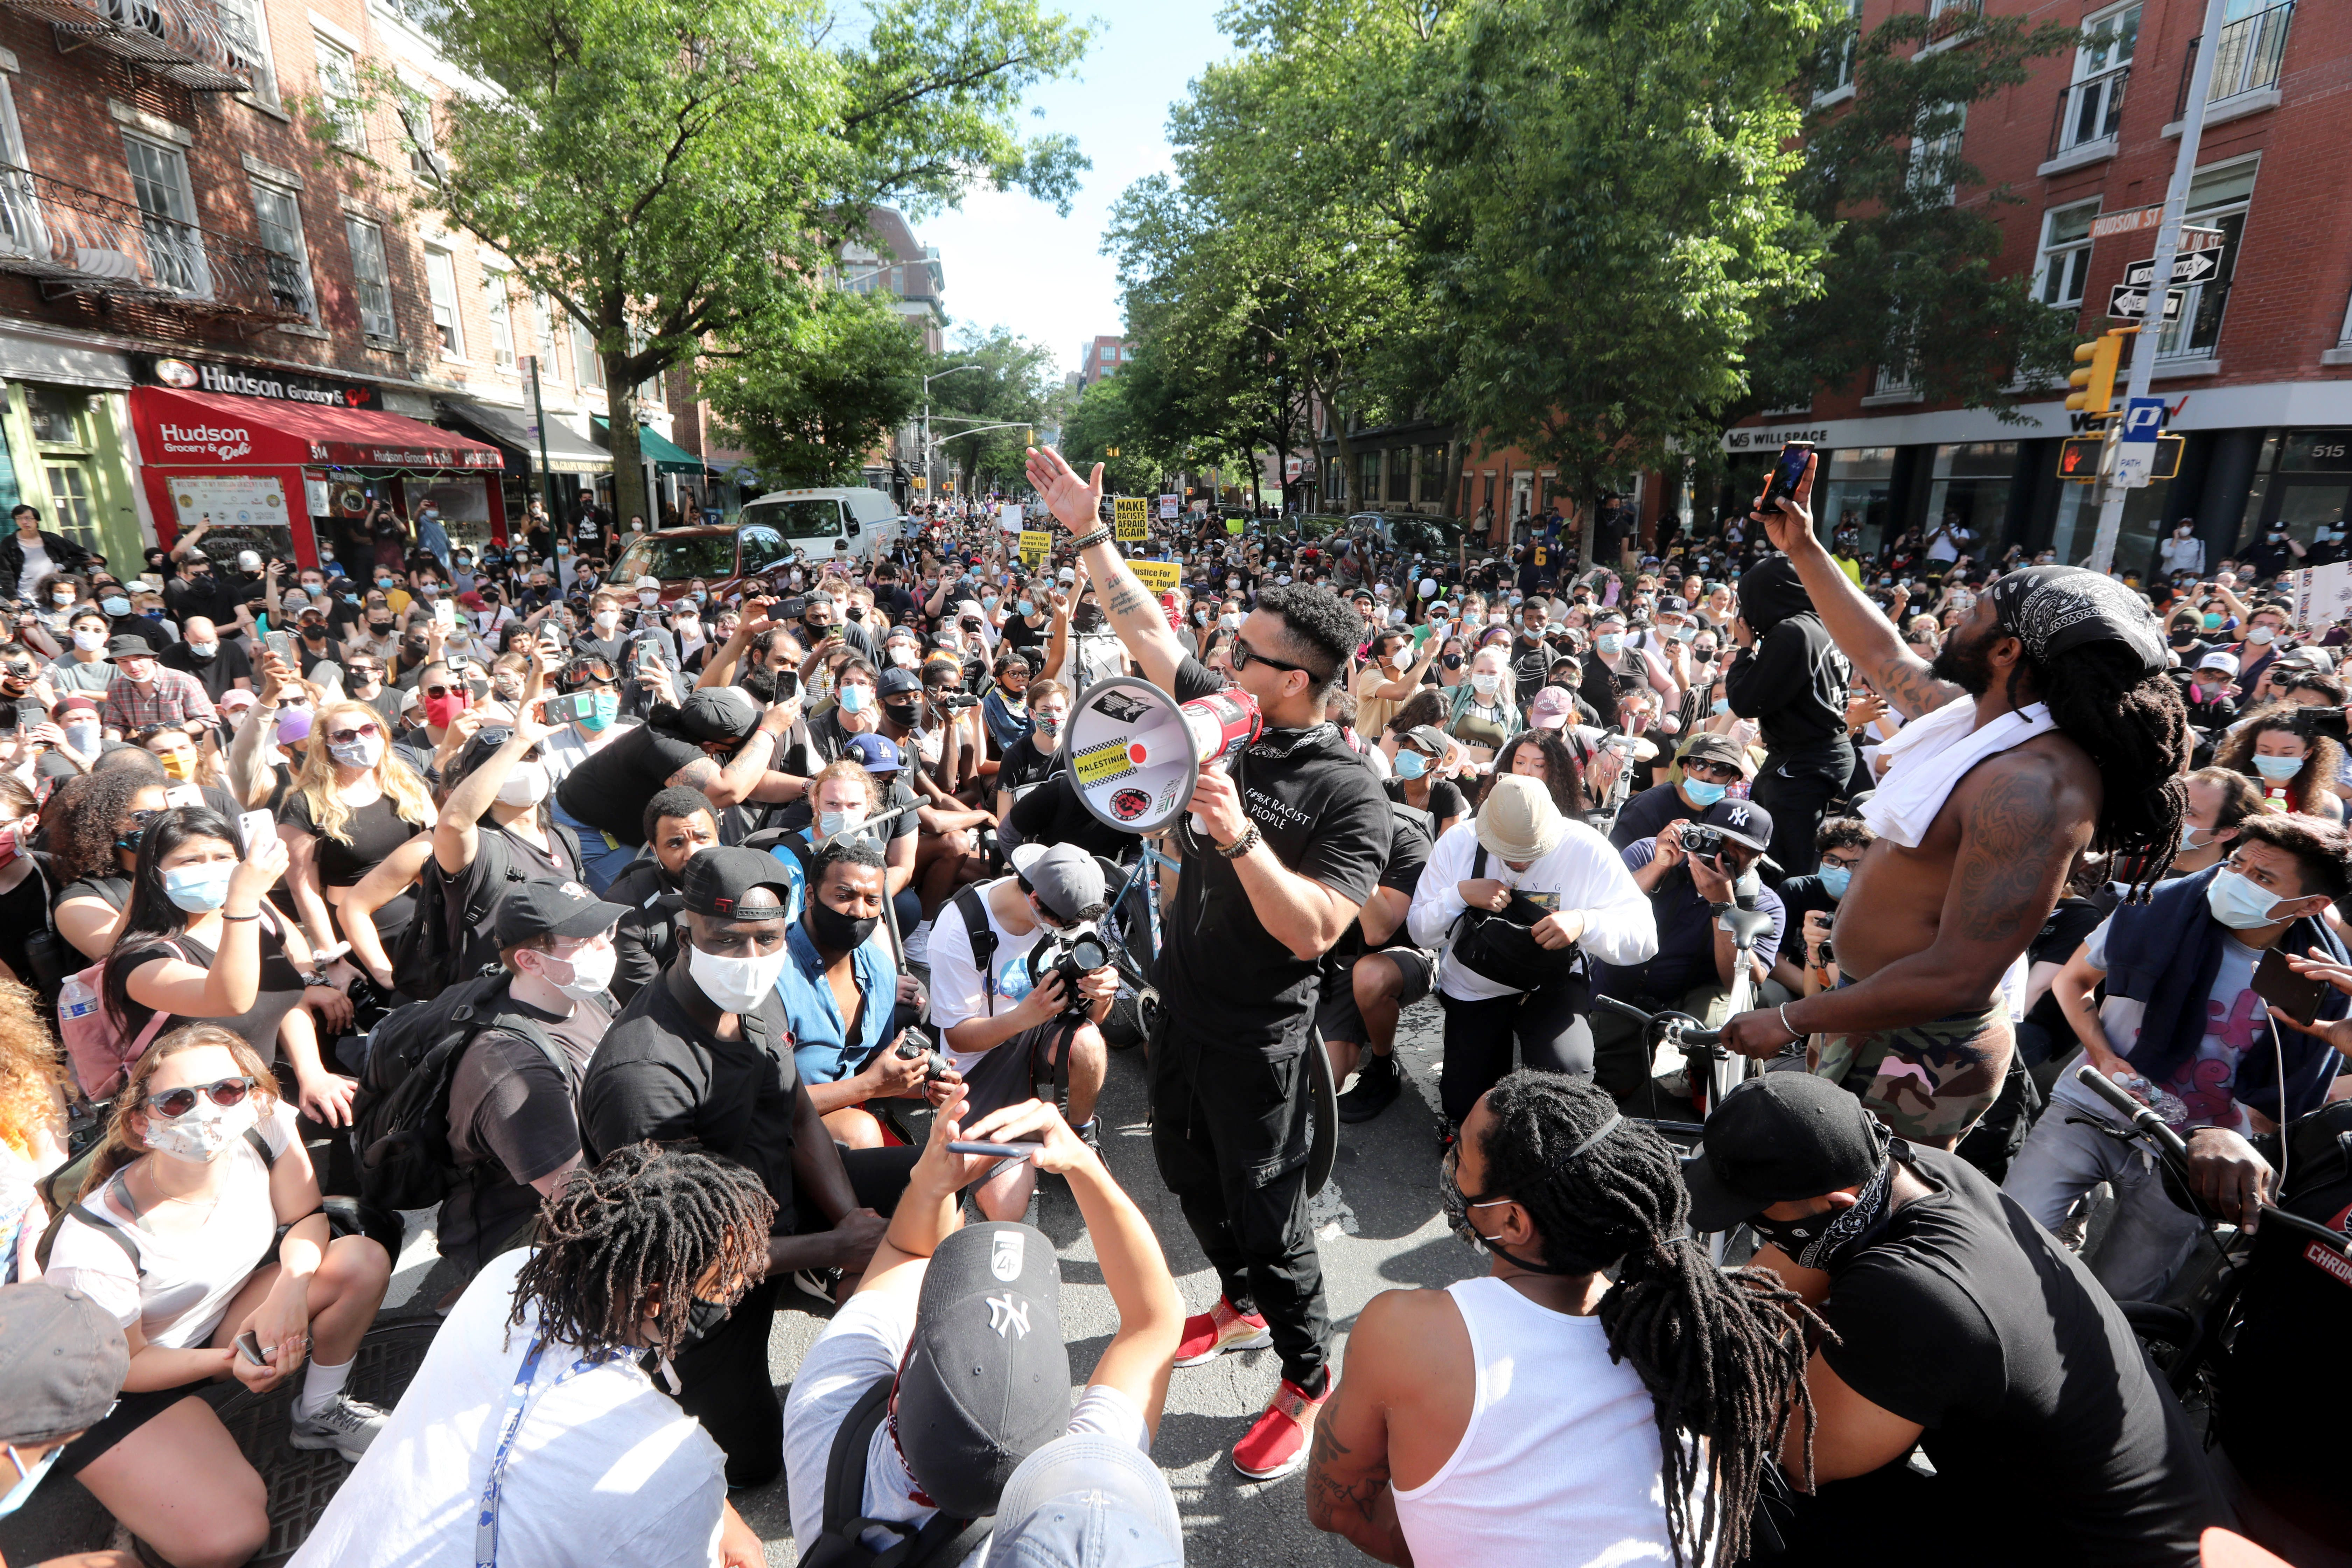 Several thousand protestors marched through Manhattan May 30, 2020 to protest the death of George Floyd in Minneapolis earlier in the week. The march stopped at several points, including in Greenwich Village to rally supporters.